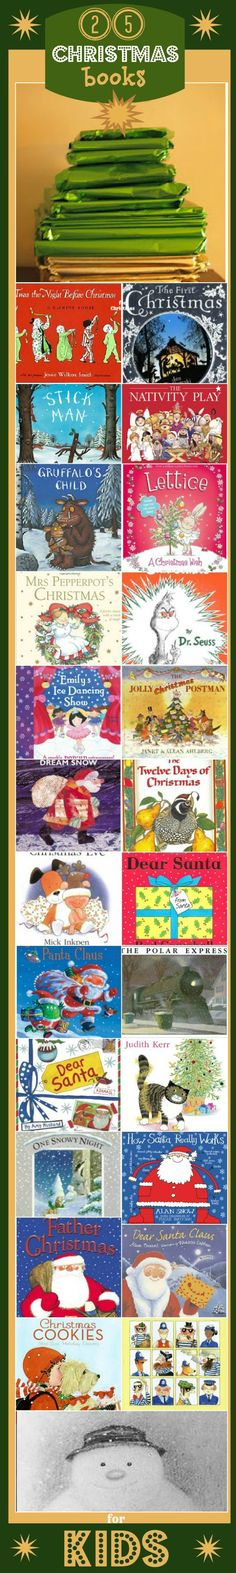 25 CHRISTMAS books for kids. Perfect for ADVENT: create a FUN alternative advent countdown with a festive book every day. We are doing 25 books. not christmas books. Next year will be christmas books. Advent For Kids, Christmas Books For Kids, Christmas Time Is Here, Merry Little Christmas, Noel Christmas, Christmas Activities, Winter Christmas, All Things Christmas, Christmas Calendar